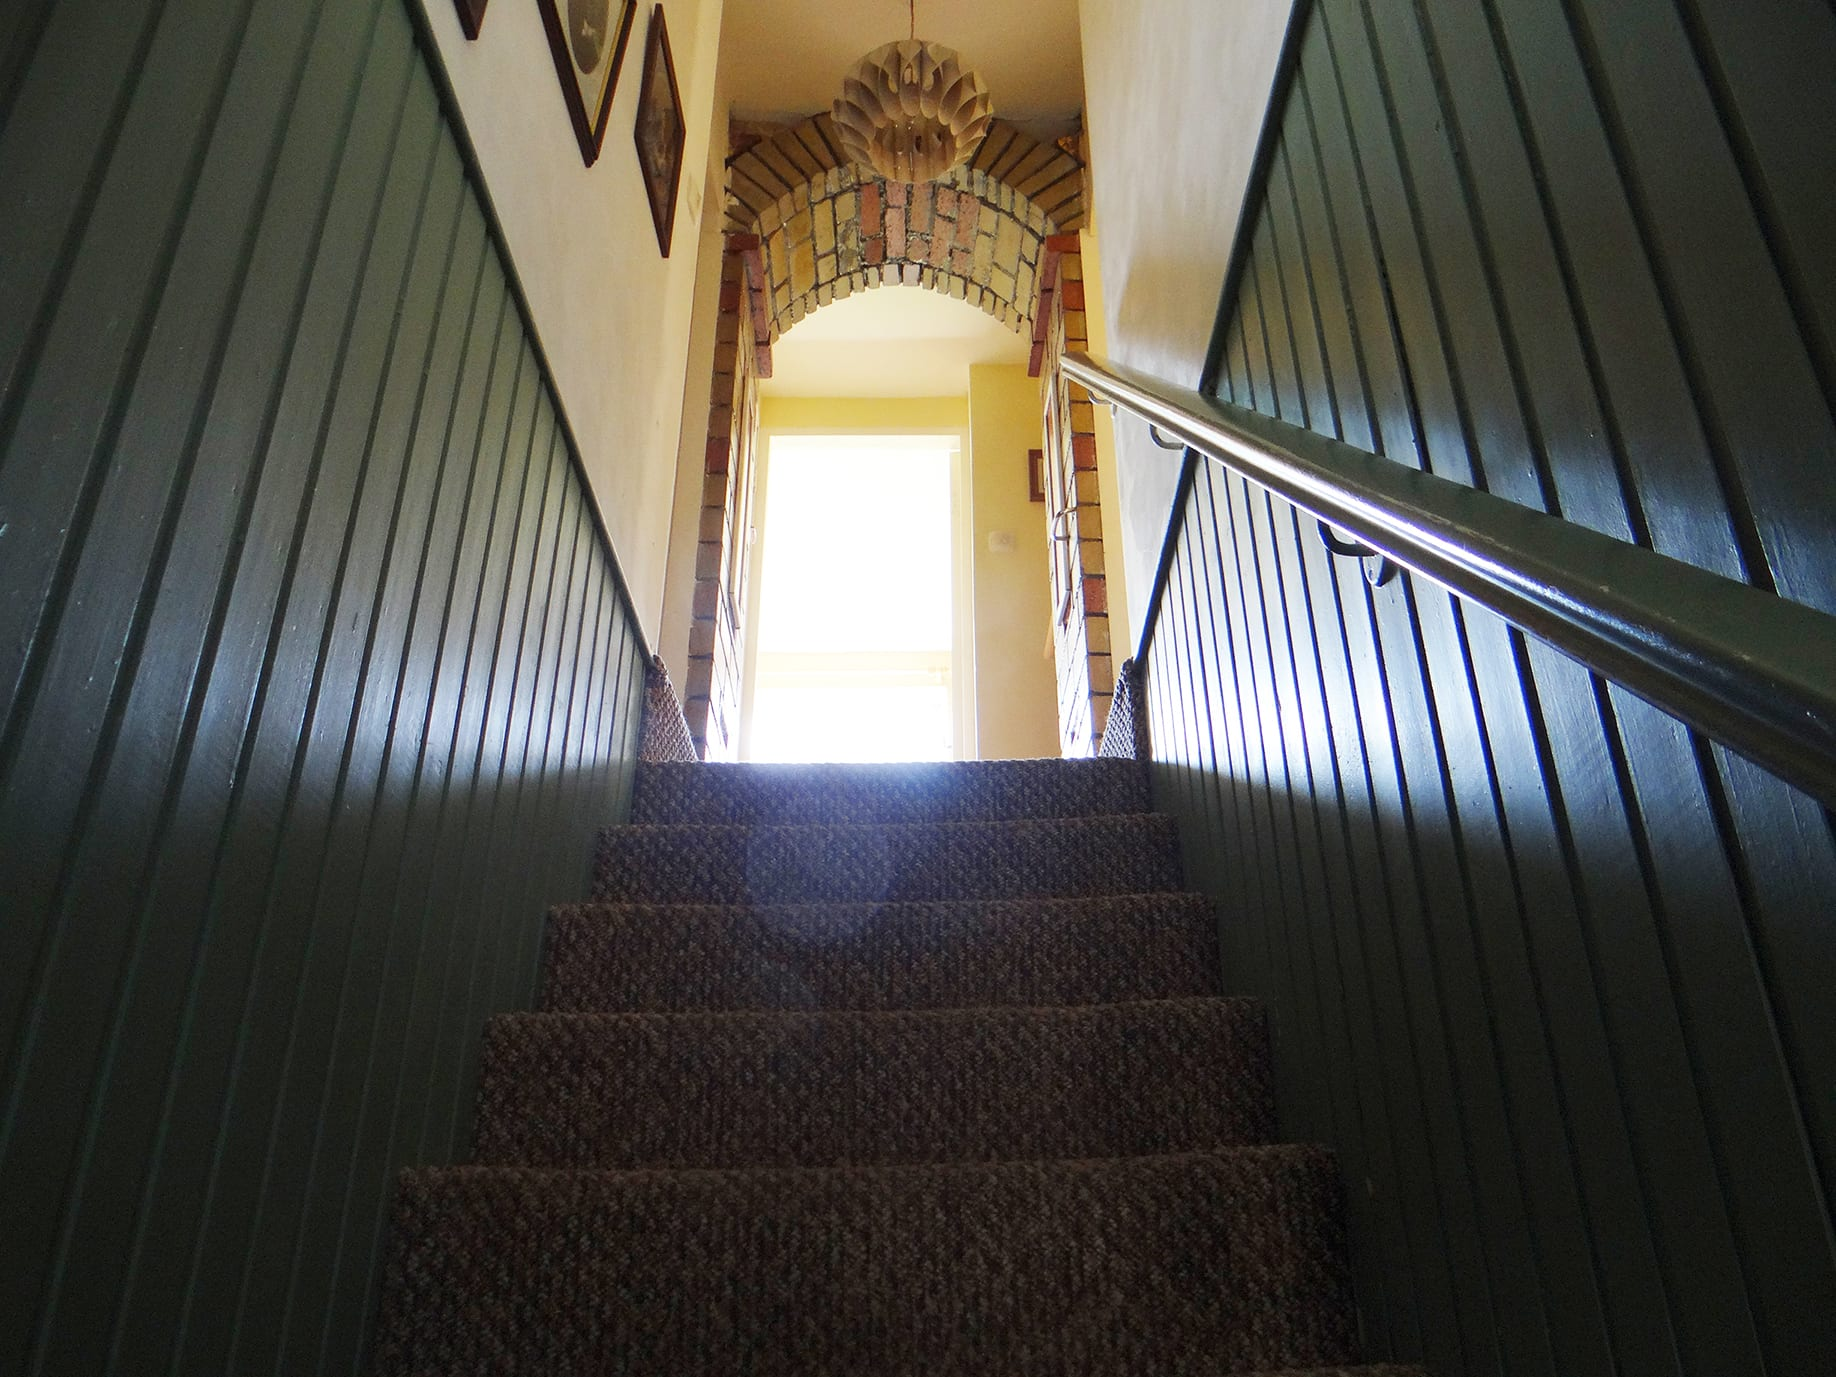 10. Stairs